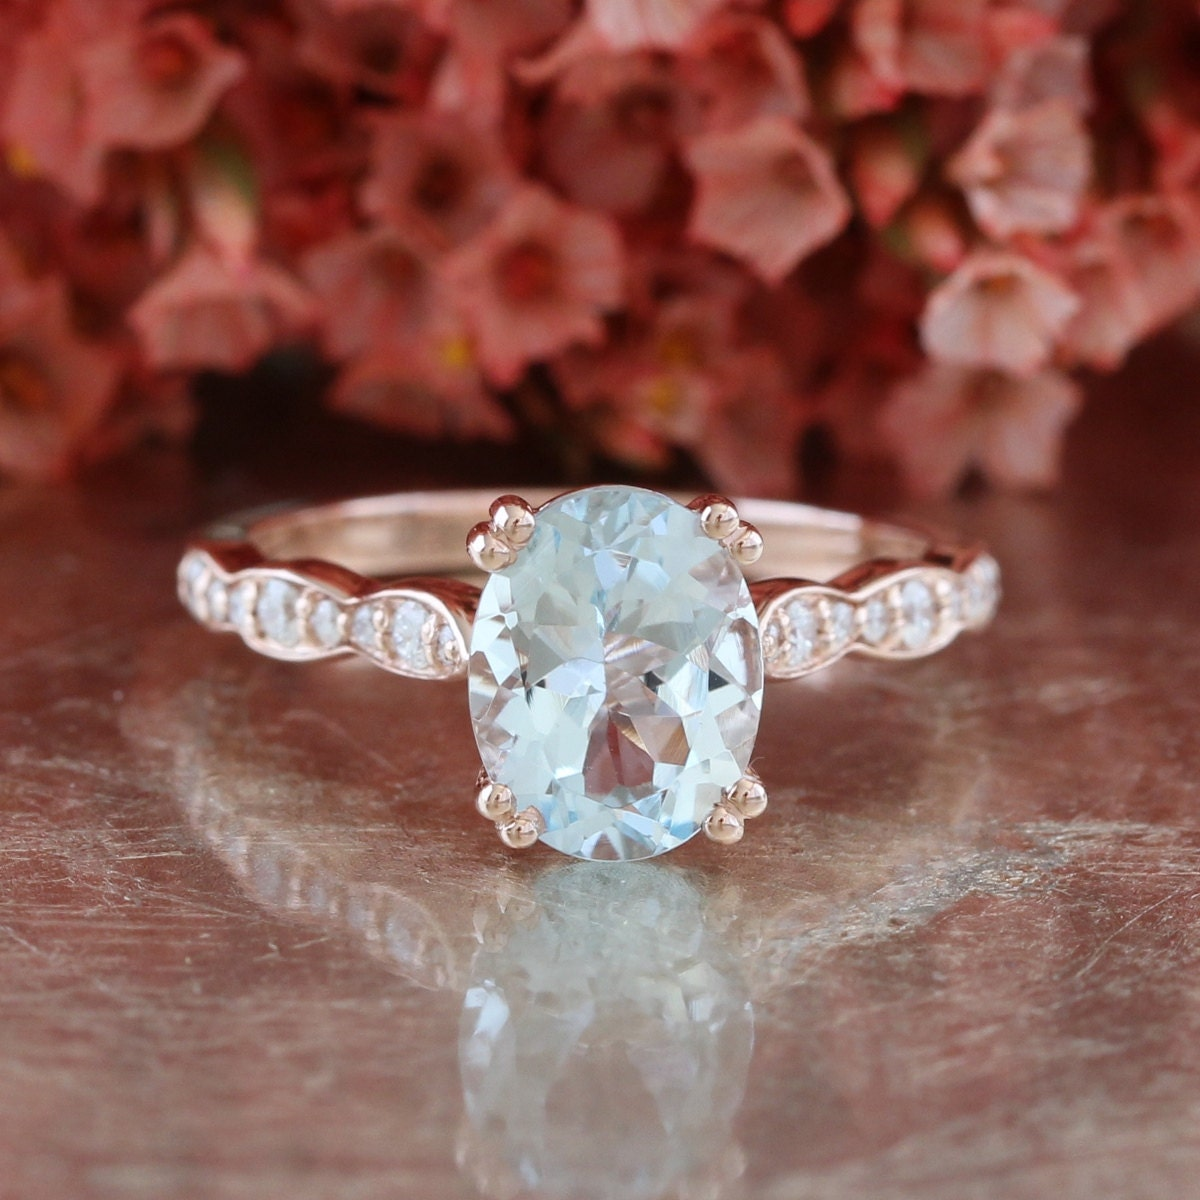 solitaire aquamarine engagement ring in 14k rose gold. Black Bedroom Furniture Sets. Home Design Ideas